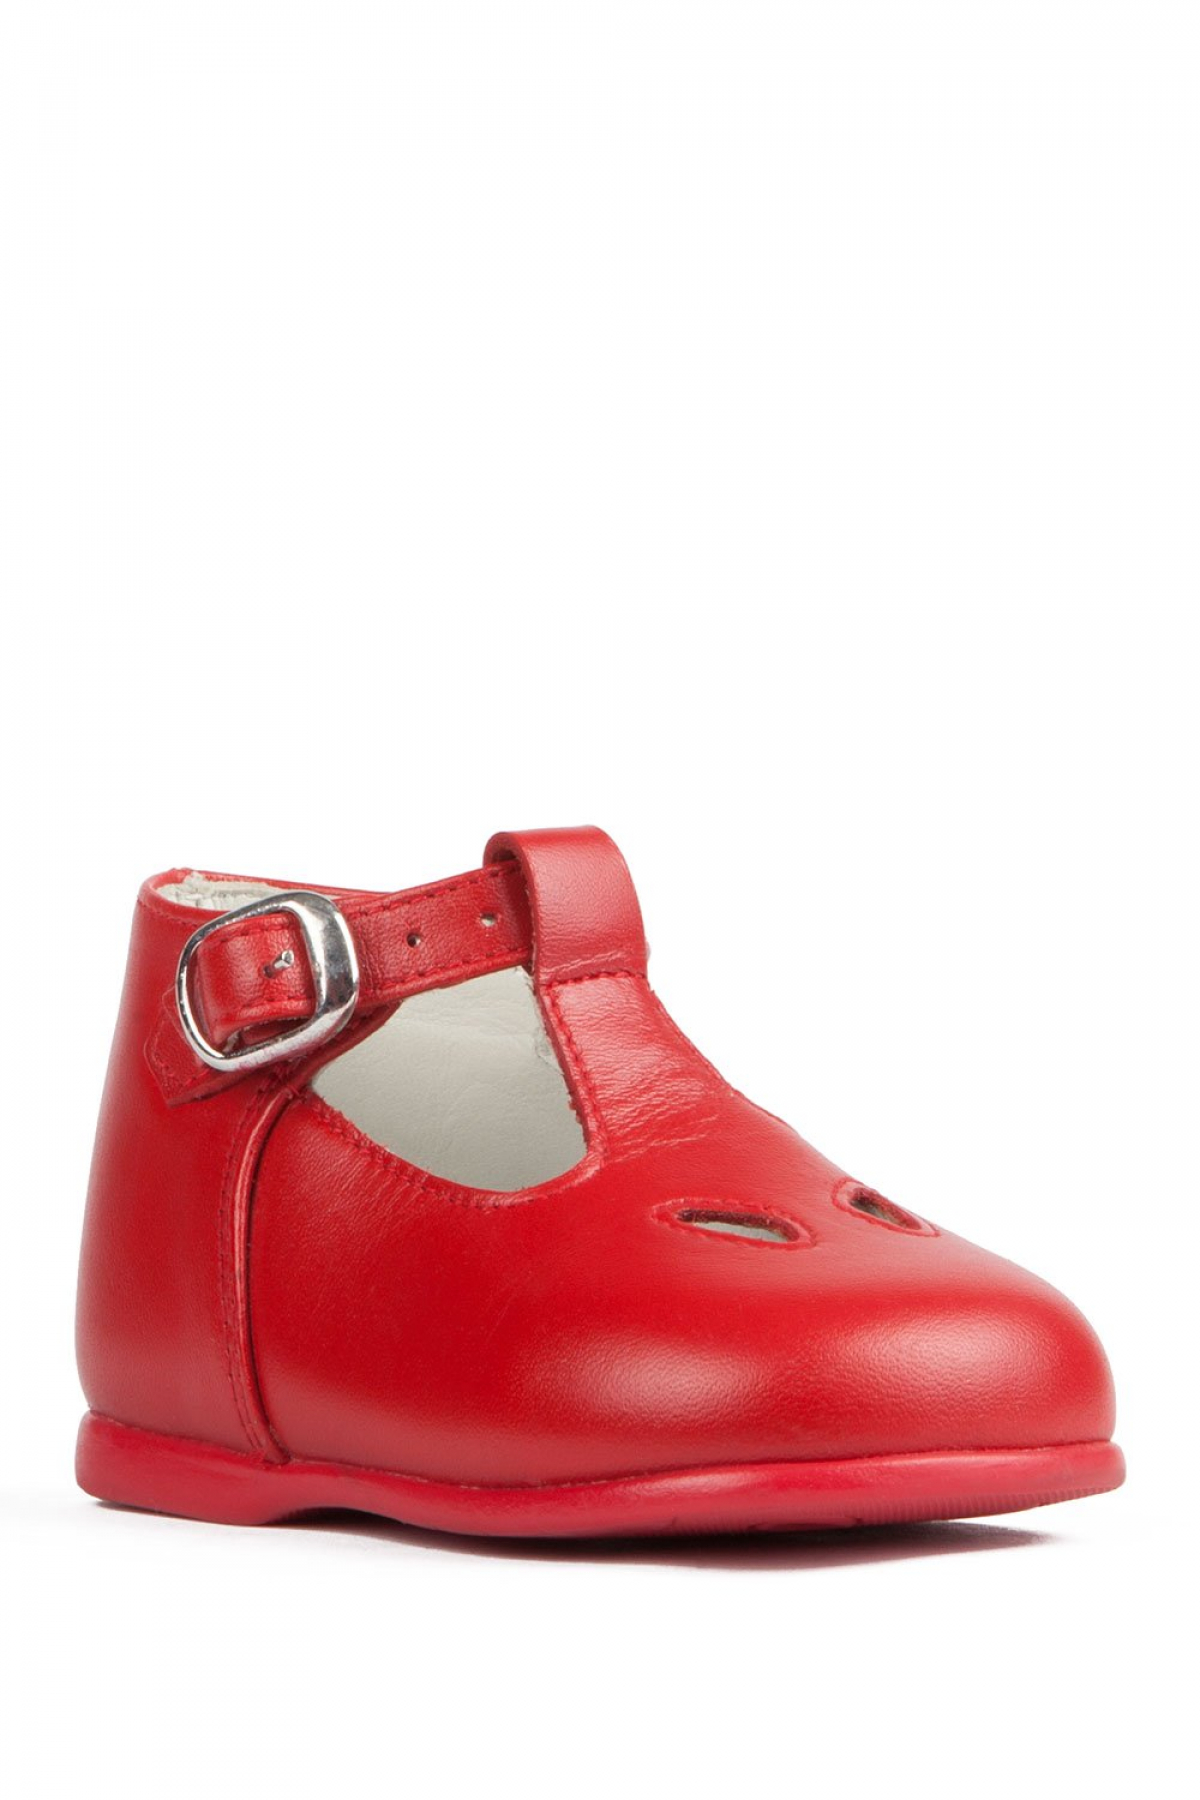 28 Chiquitin First Step Kids Shoes 17-22 Red